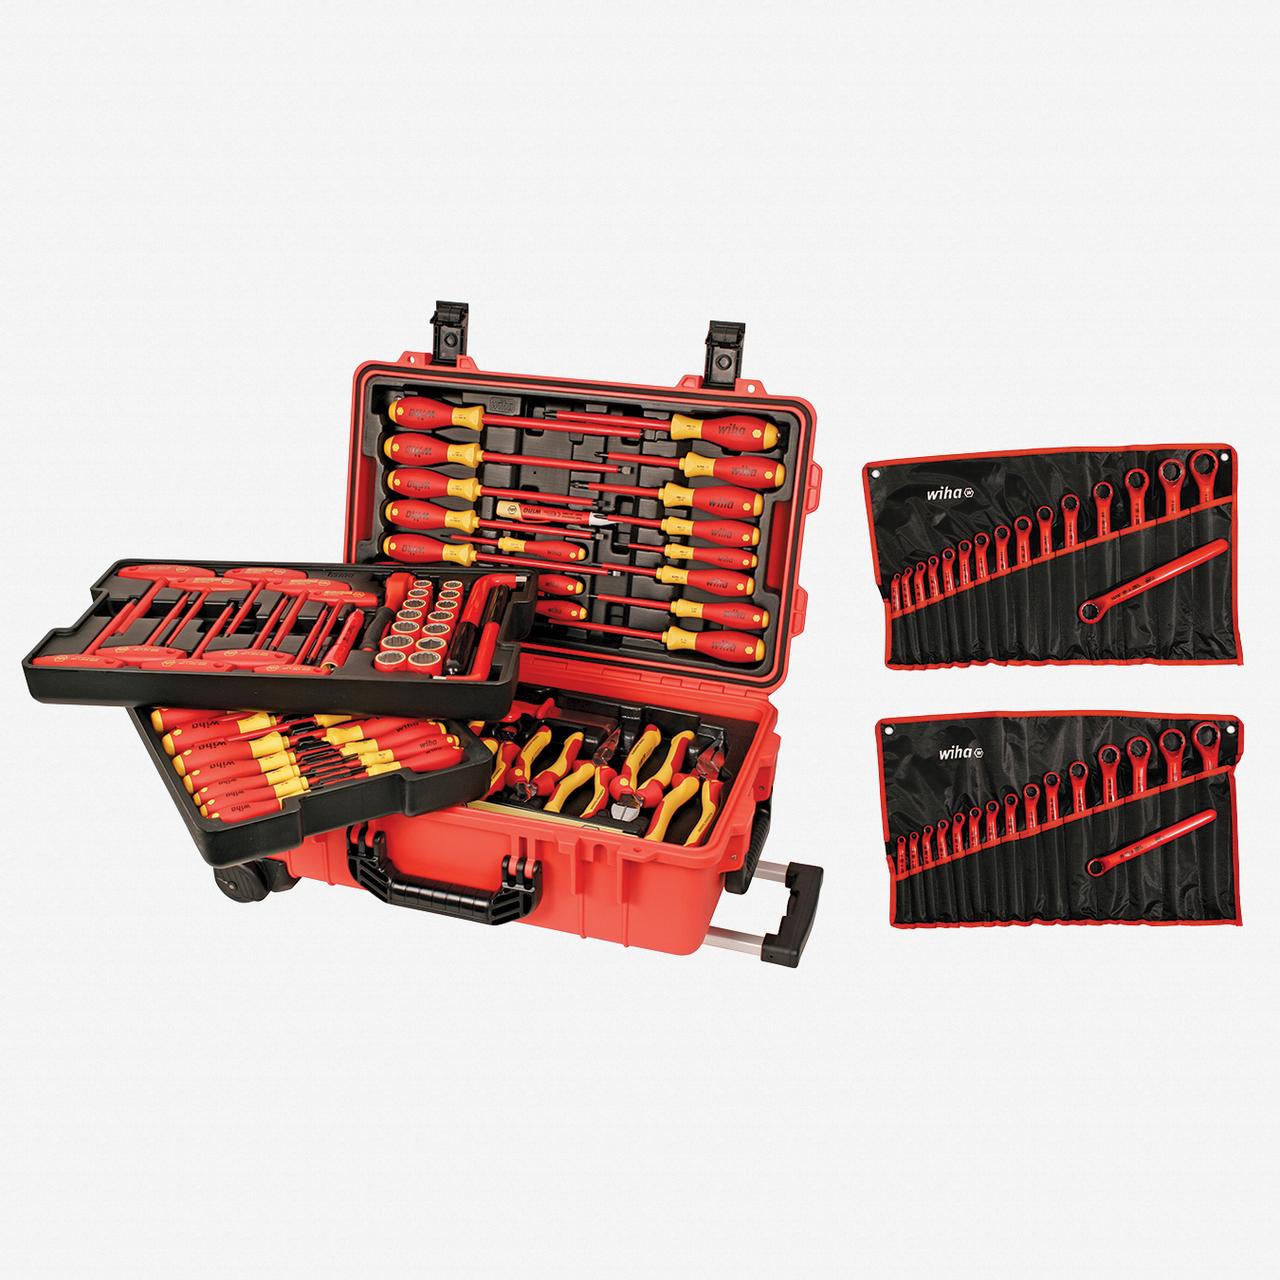 Wiha 32801 112 Piece Insulated Master Set - KC Tool